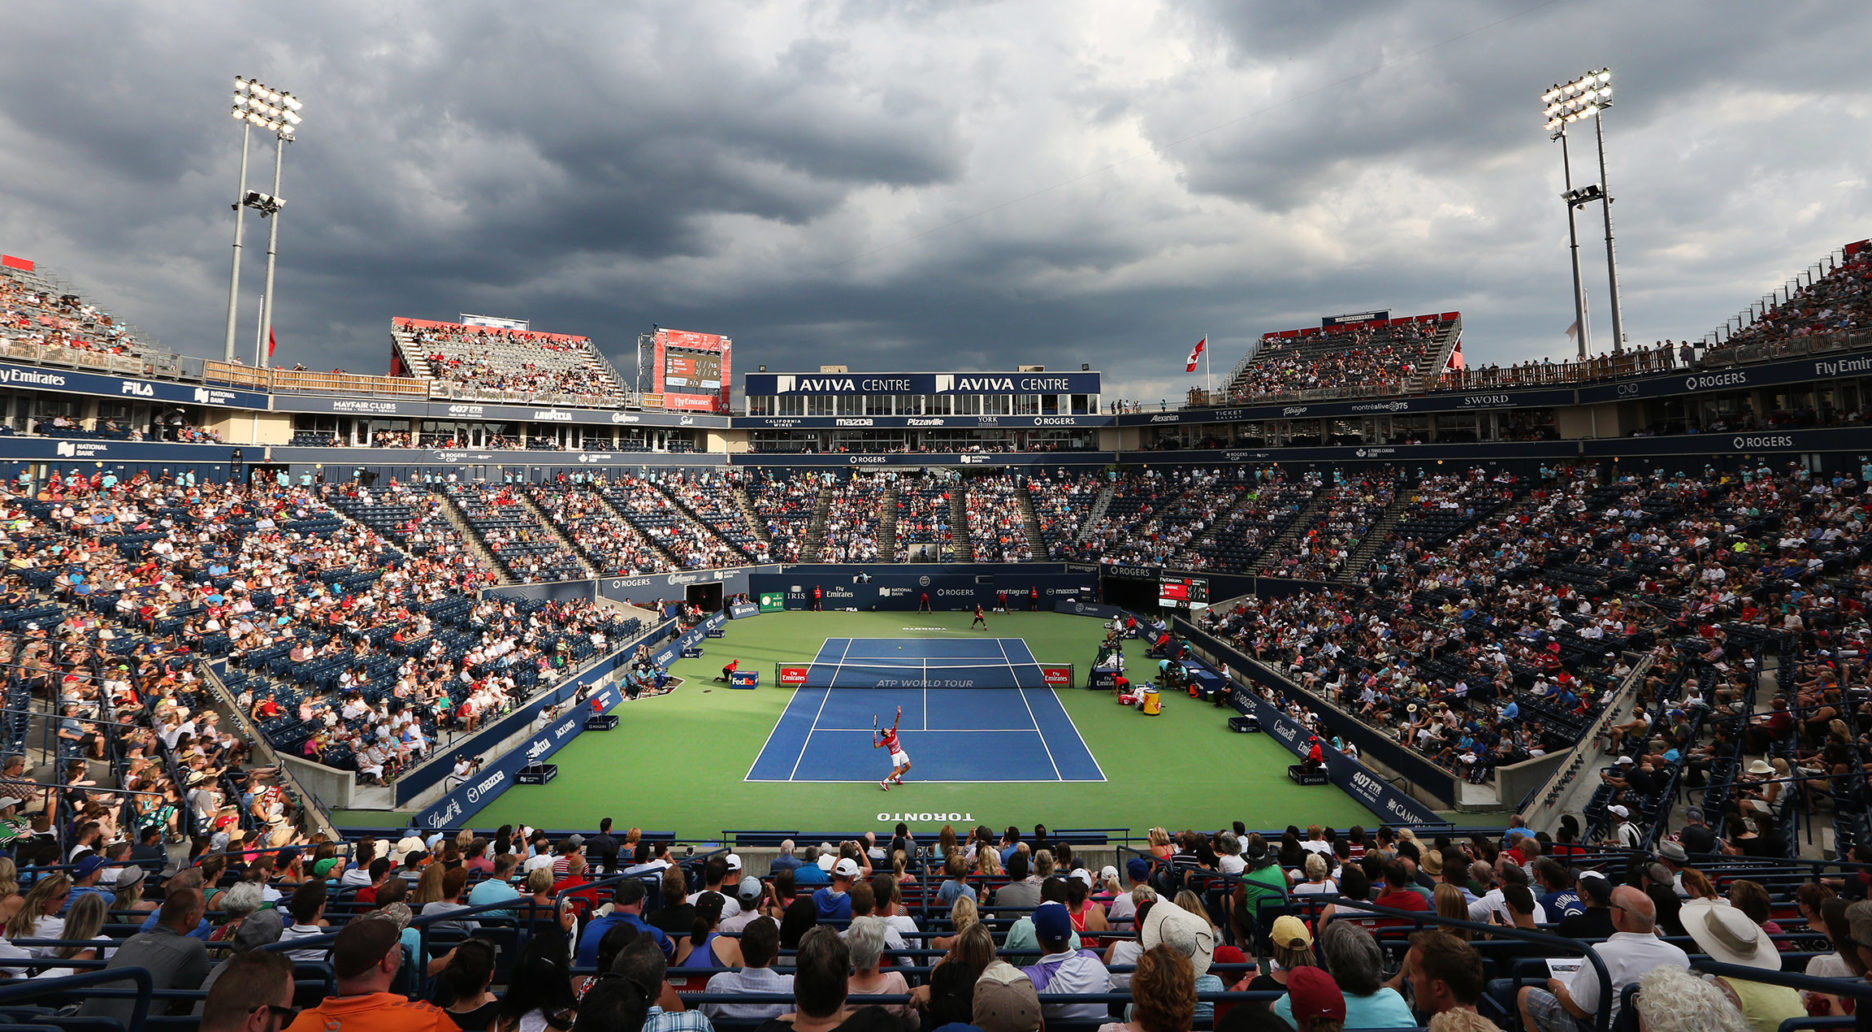 Crowd watching Milos Raonic at the Rogers Cup.